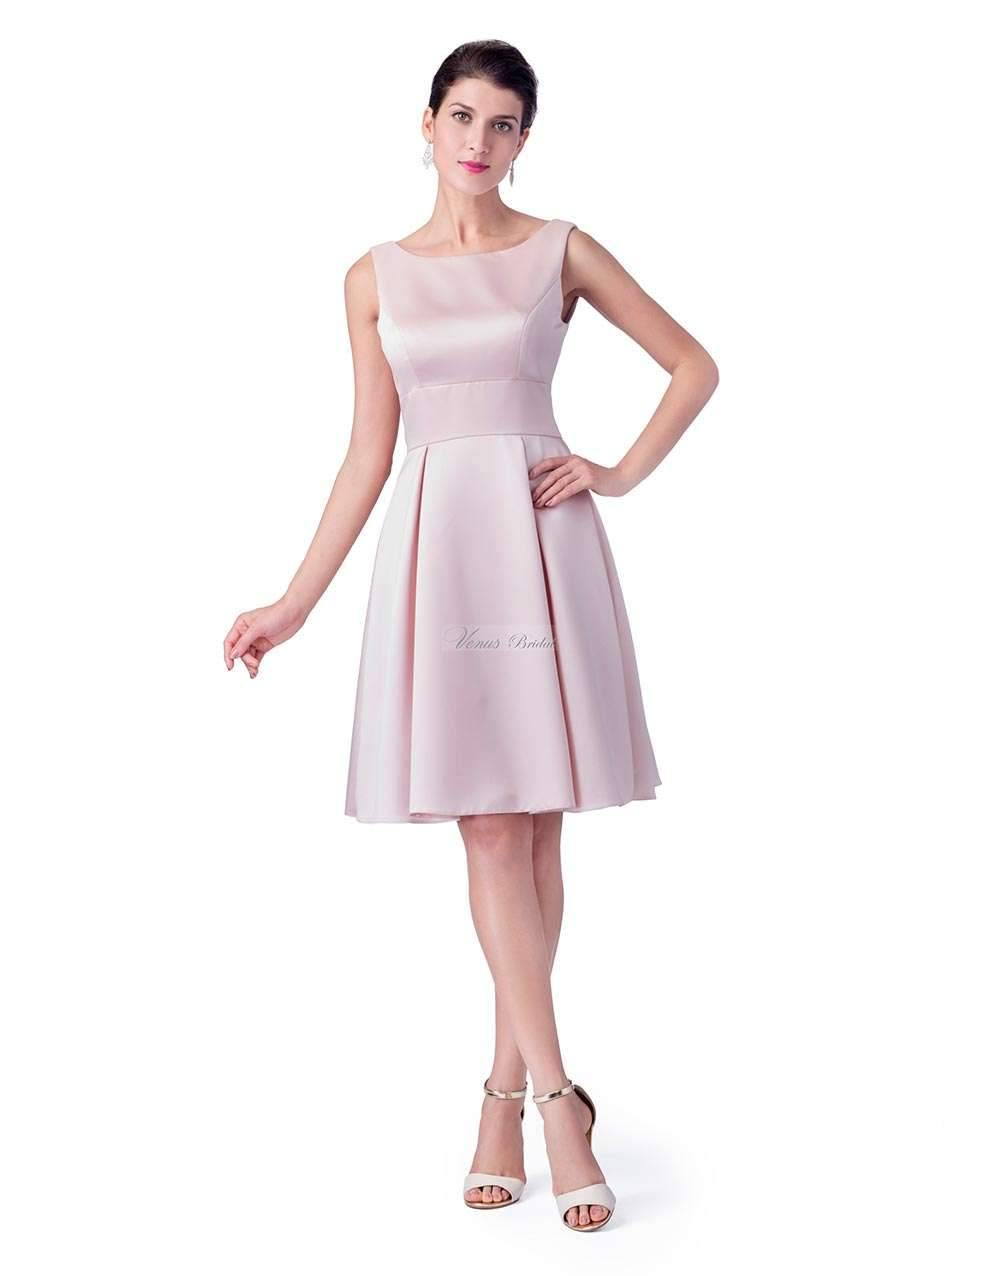 UK20 NUDE - LOUISE LONG VERSION - Adore Bridal and Occasion Wear